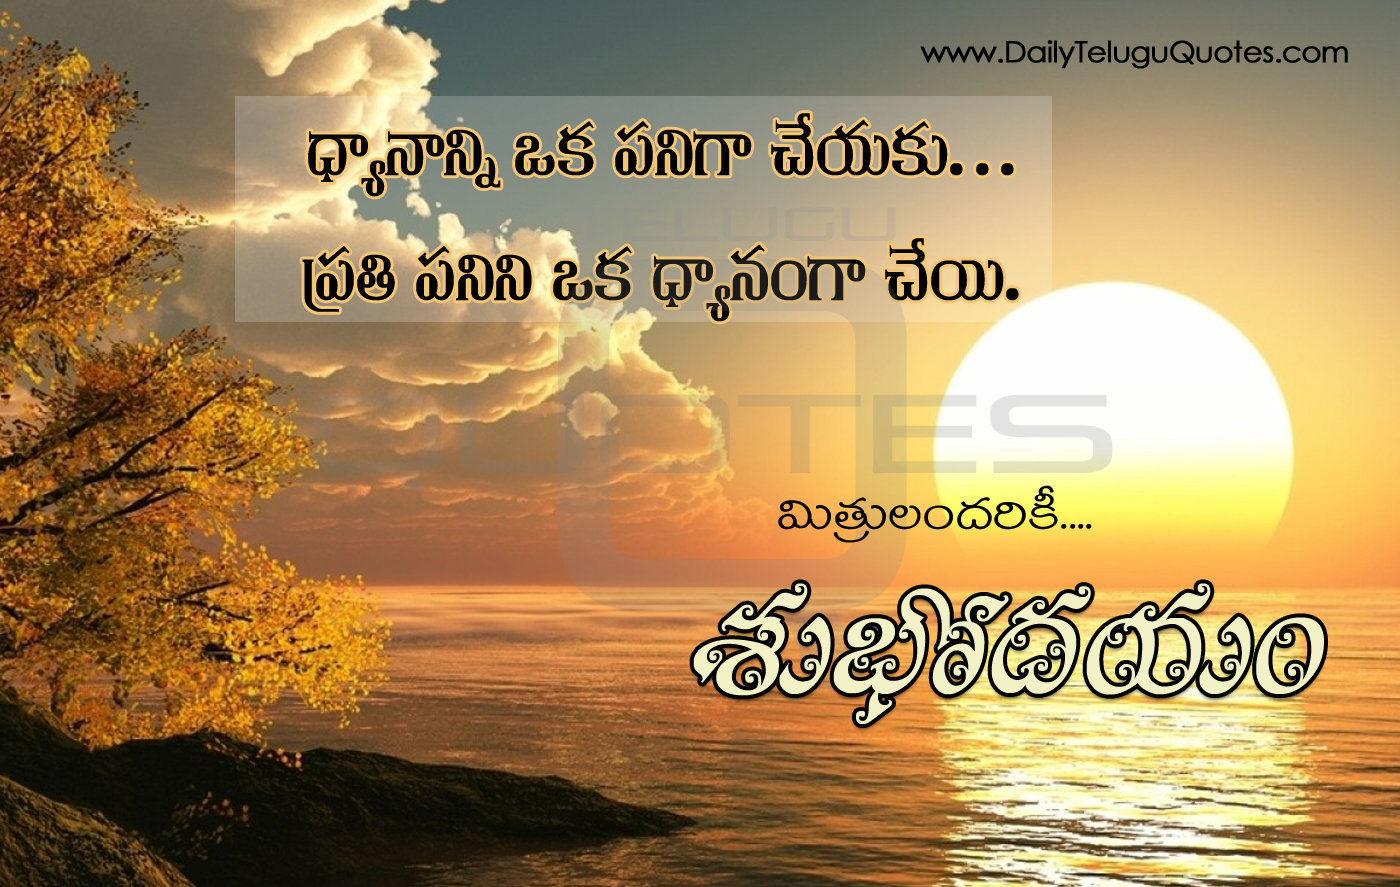 Good Morning Quotes Goodreads : Good morning wishes and hd pictures dailyteluguquotes